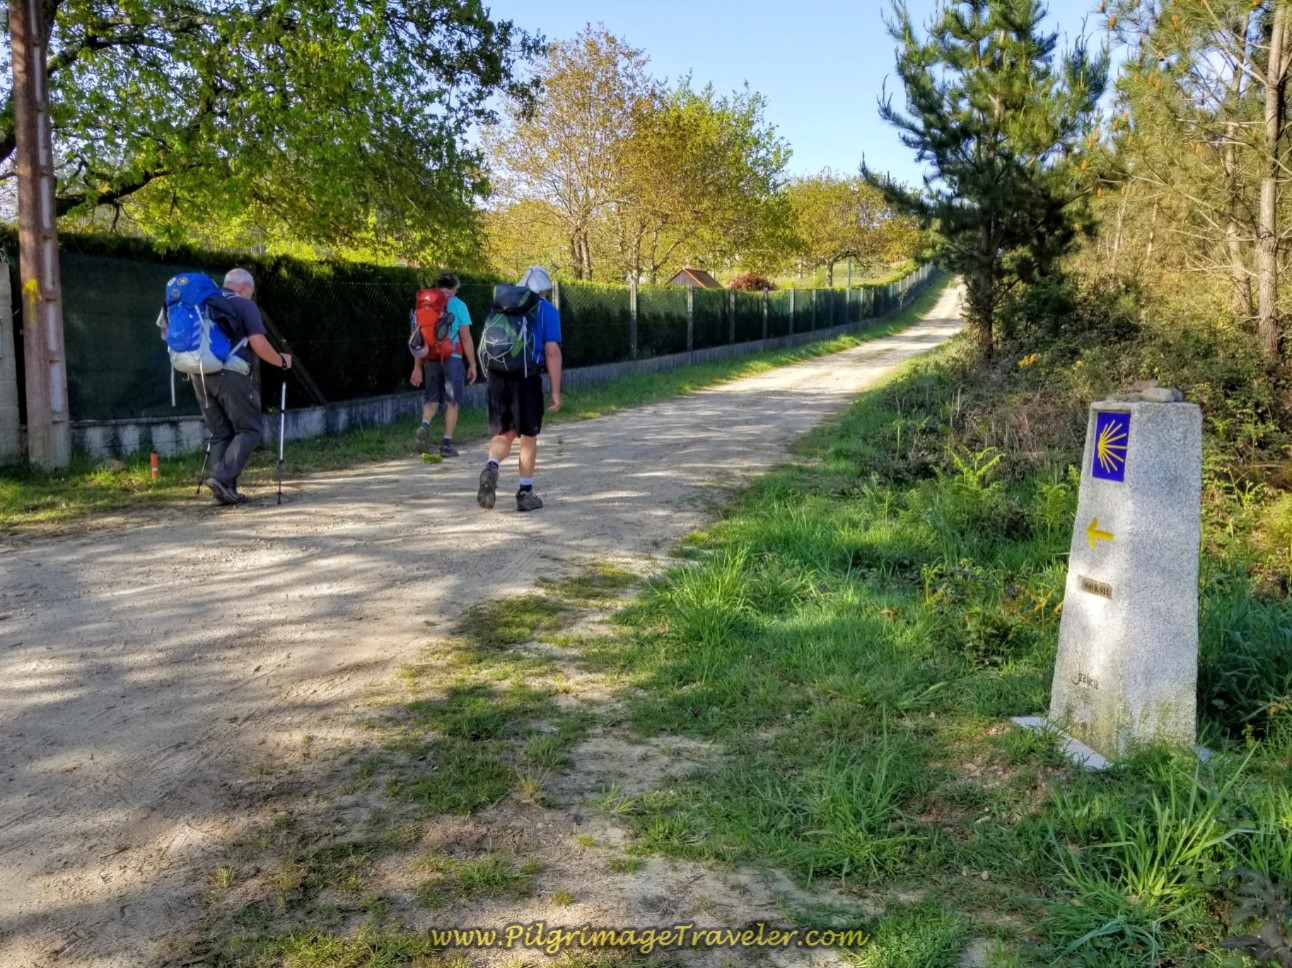 Pass by the 8.9 Kilometer Marker on Dirt Lane on day eight of the Camino Inglés